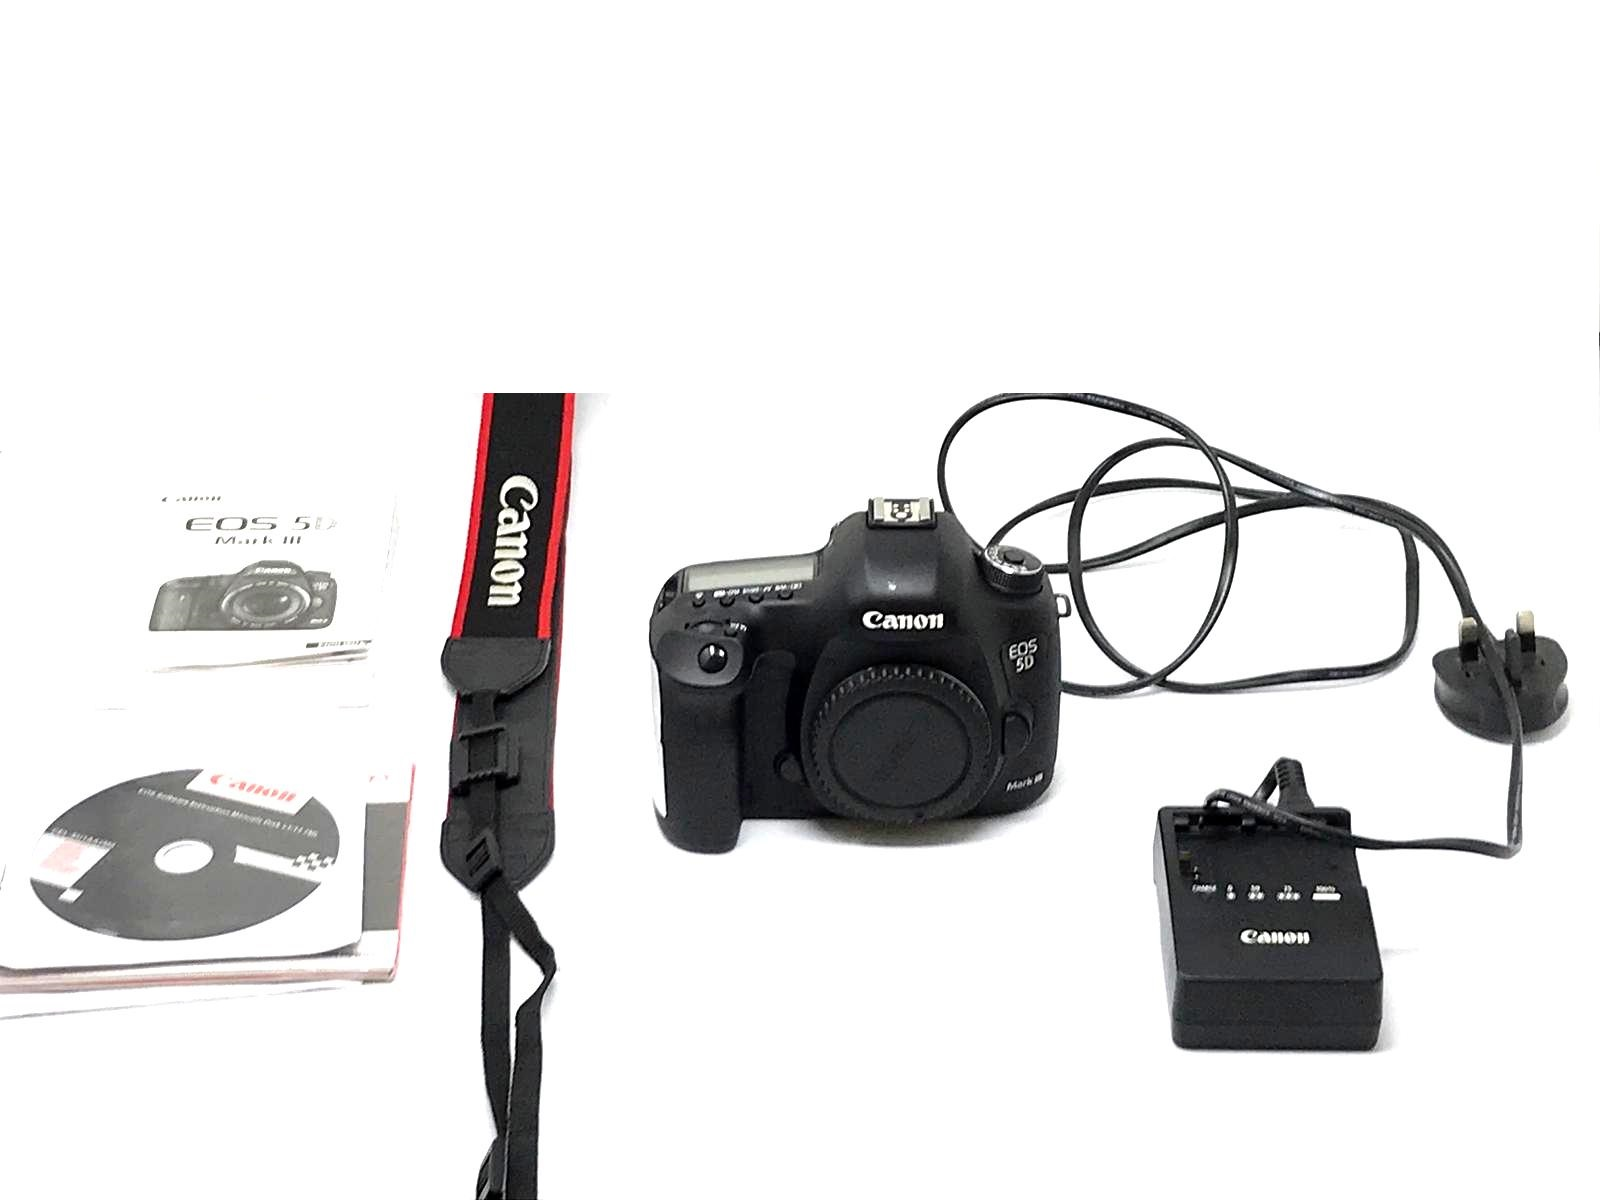 Canon EOS 5D MKIII camcorder - Image #1